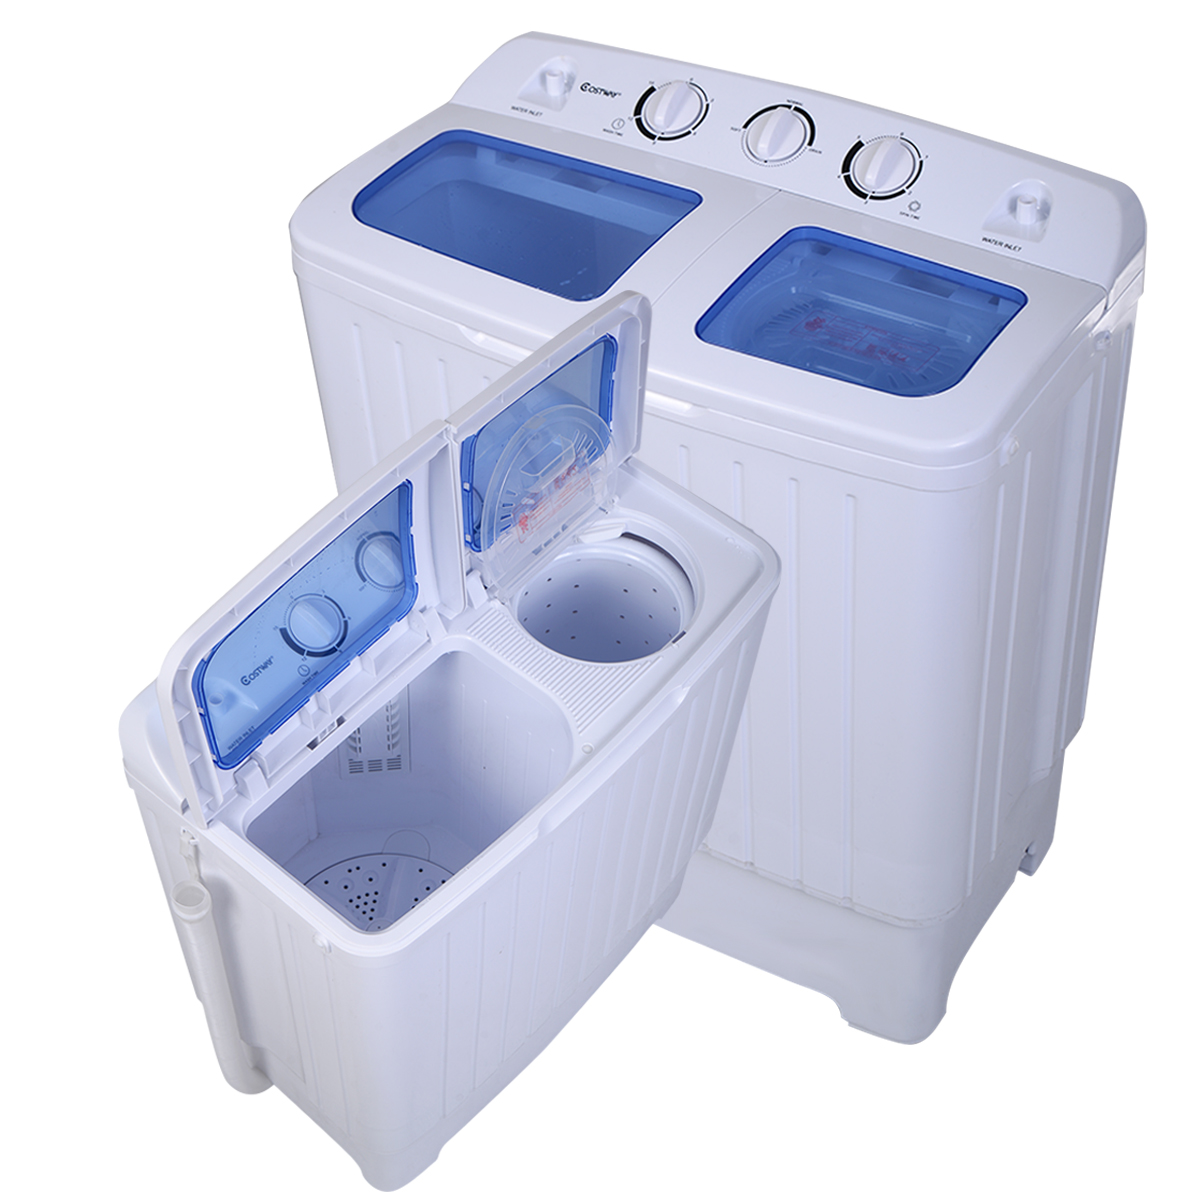 Amazing Costway Portable Mini Compact Twin Tub 17.6lb Washing Machine Washer Spin  Dryer   Walmart.com